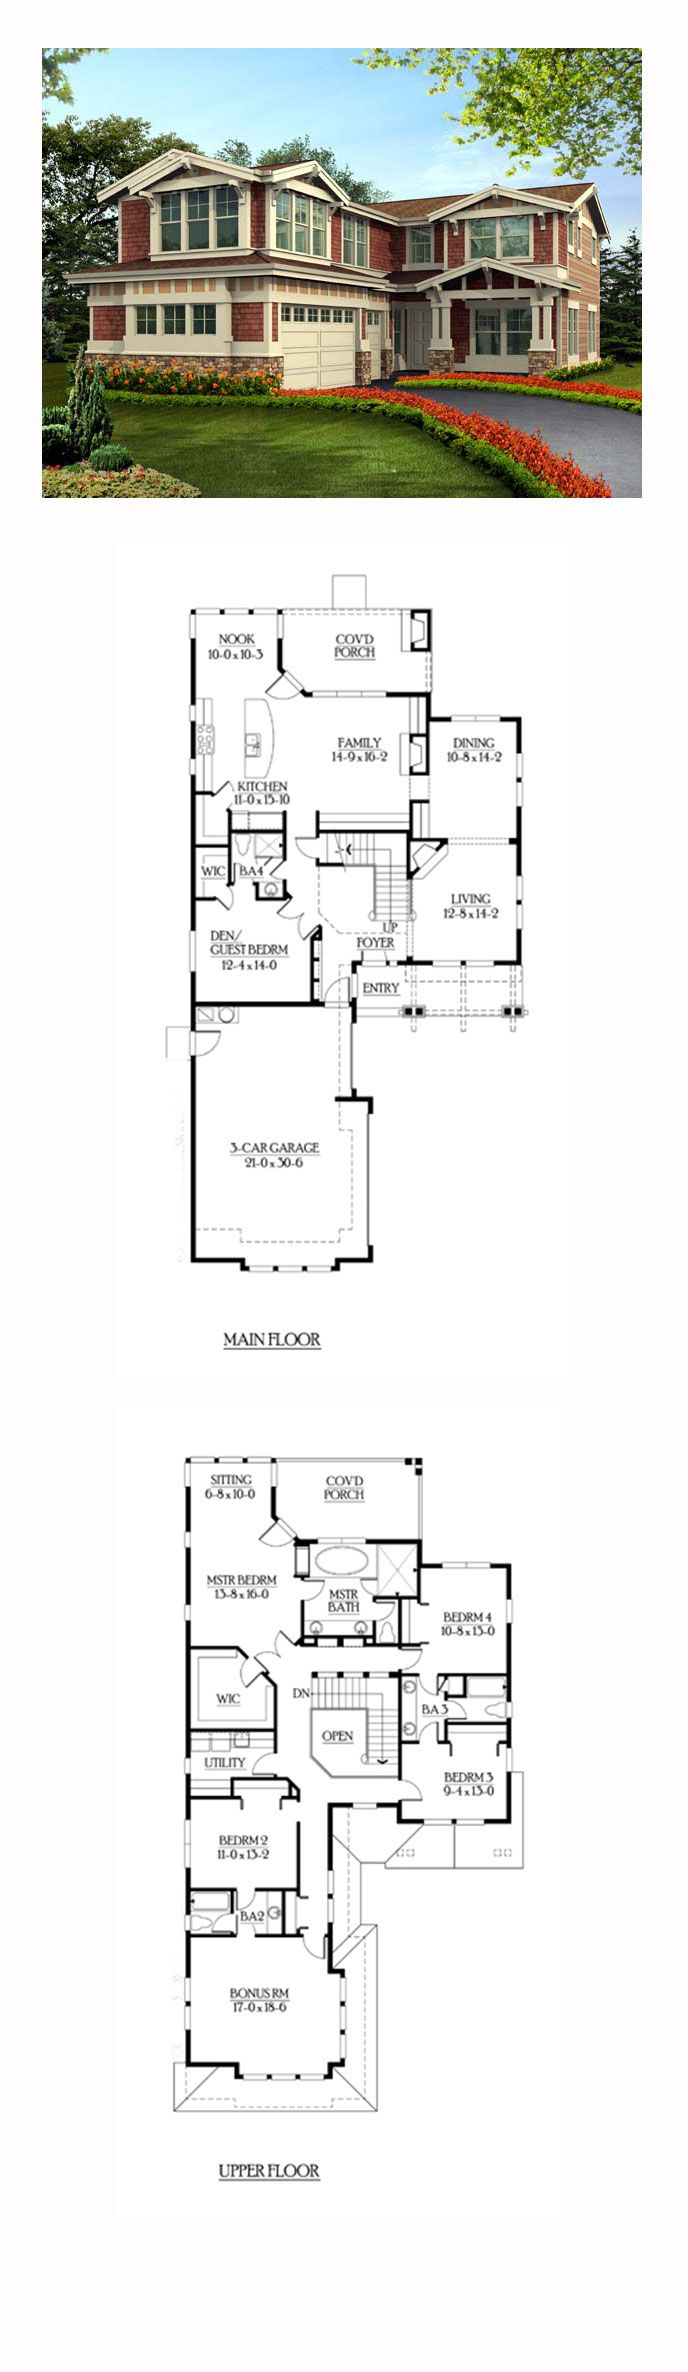 Shingle style cool house plan id chp 39816 total living for 5 bedroom house plans with bonus room